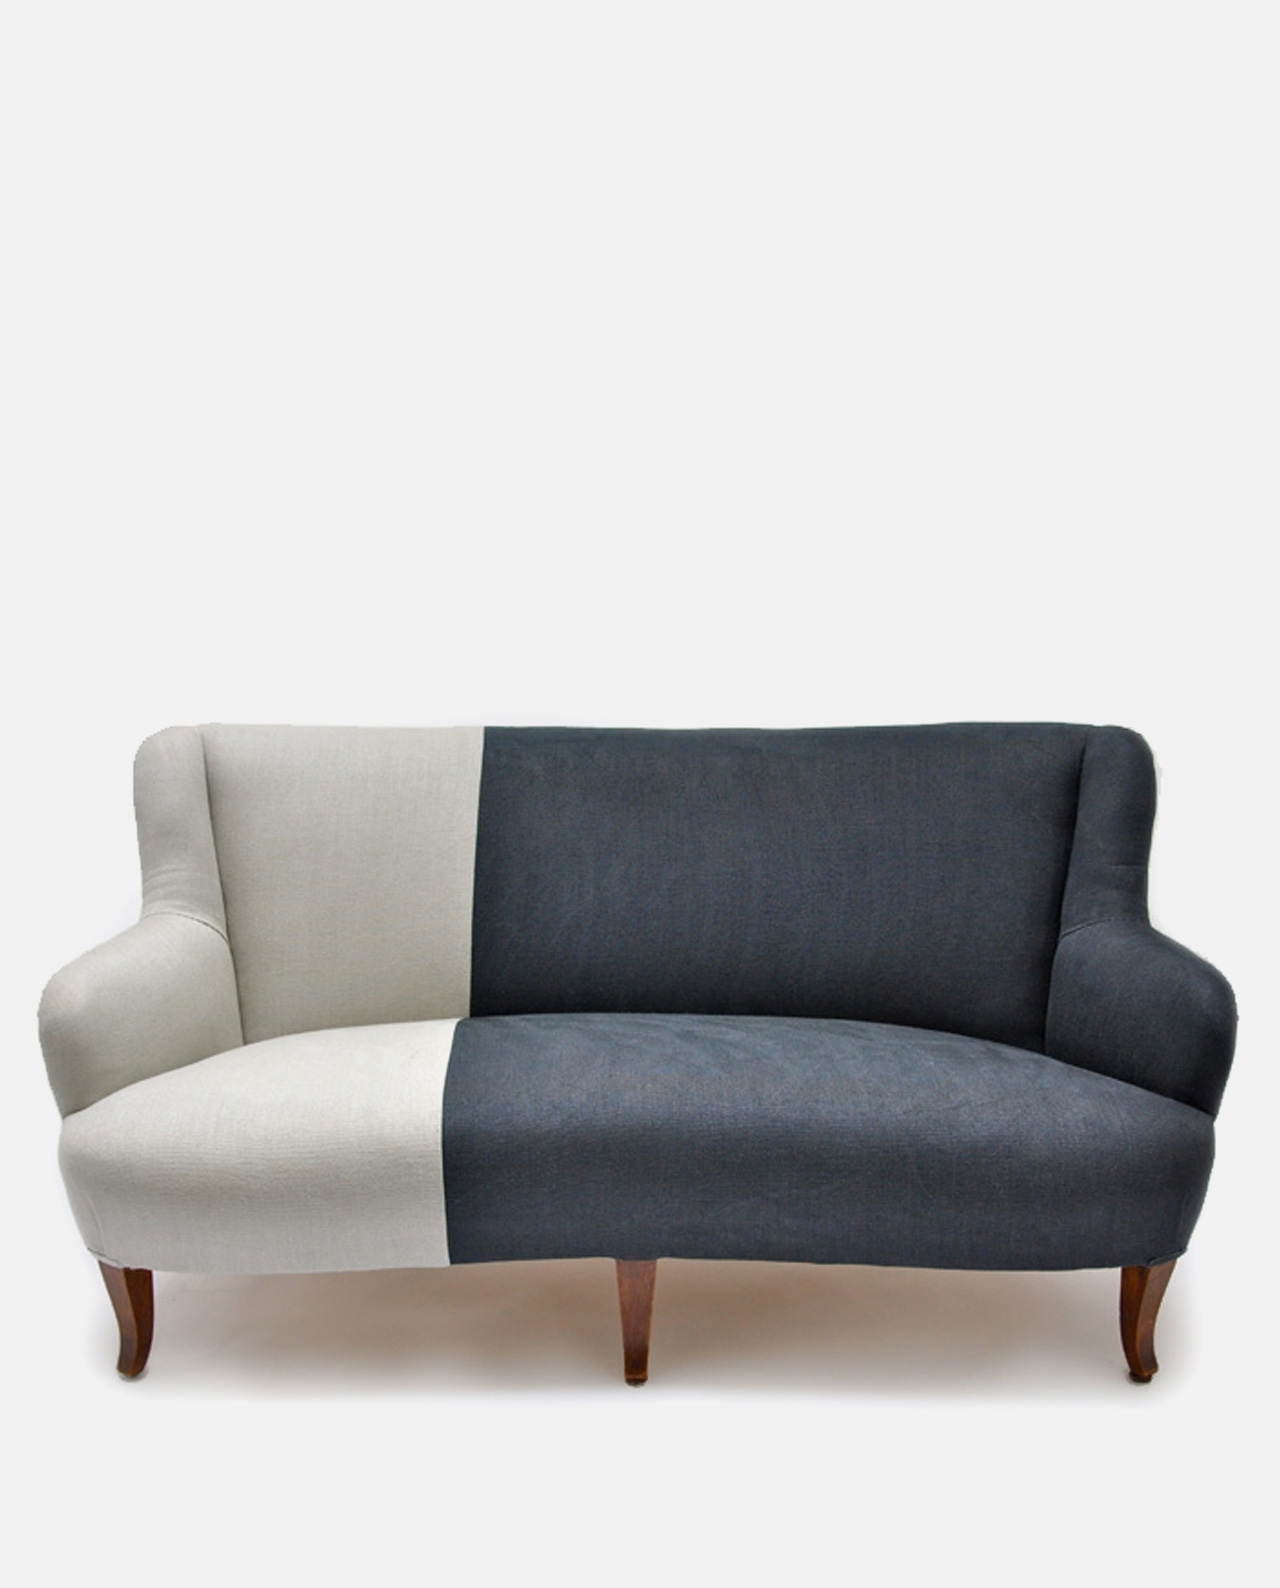 Ines Cole With Most Up To Date Vintage Sofas (View 6 of 20)